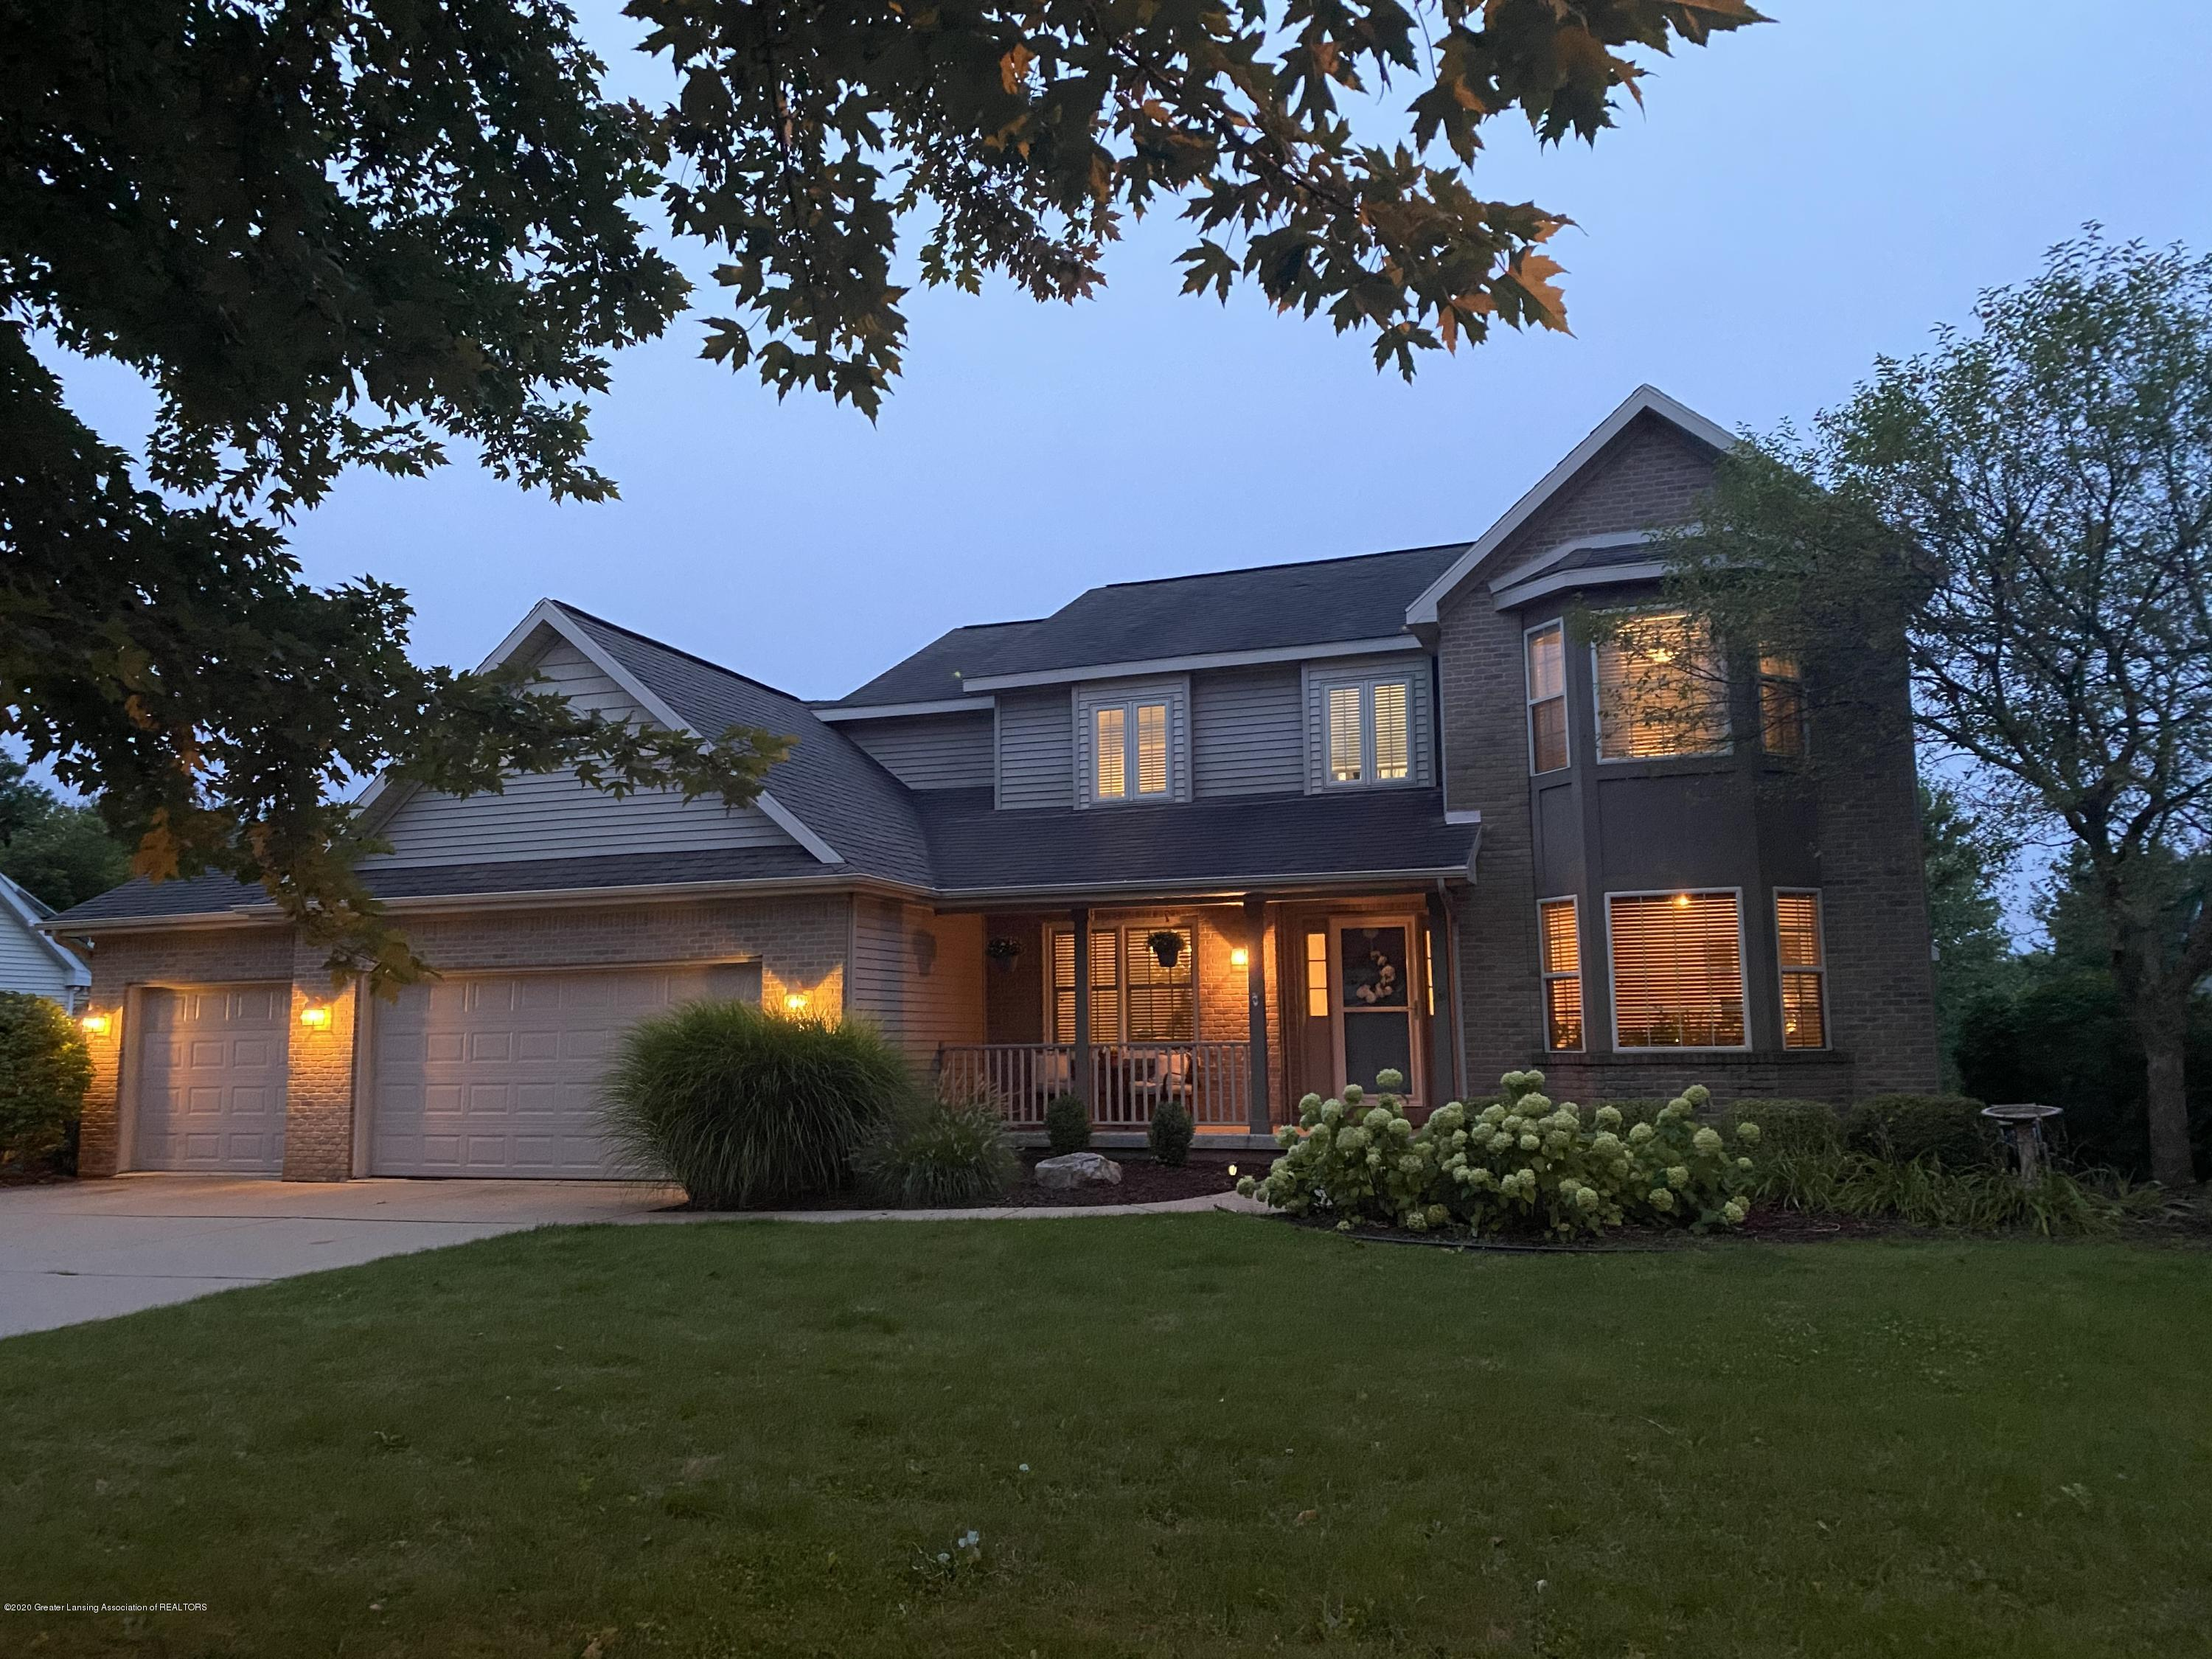 3159 Granview Ln - night - 1